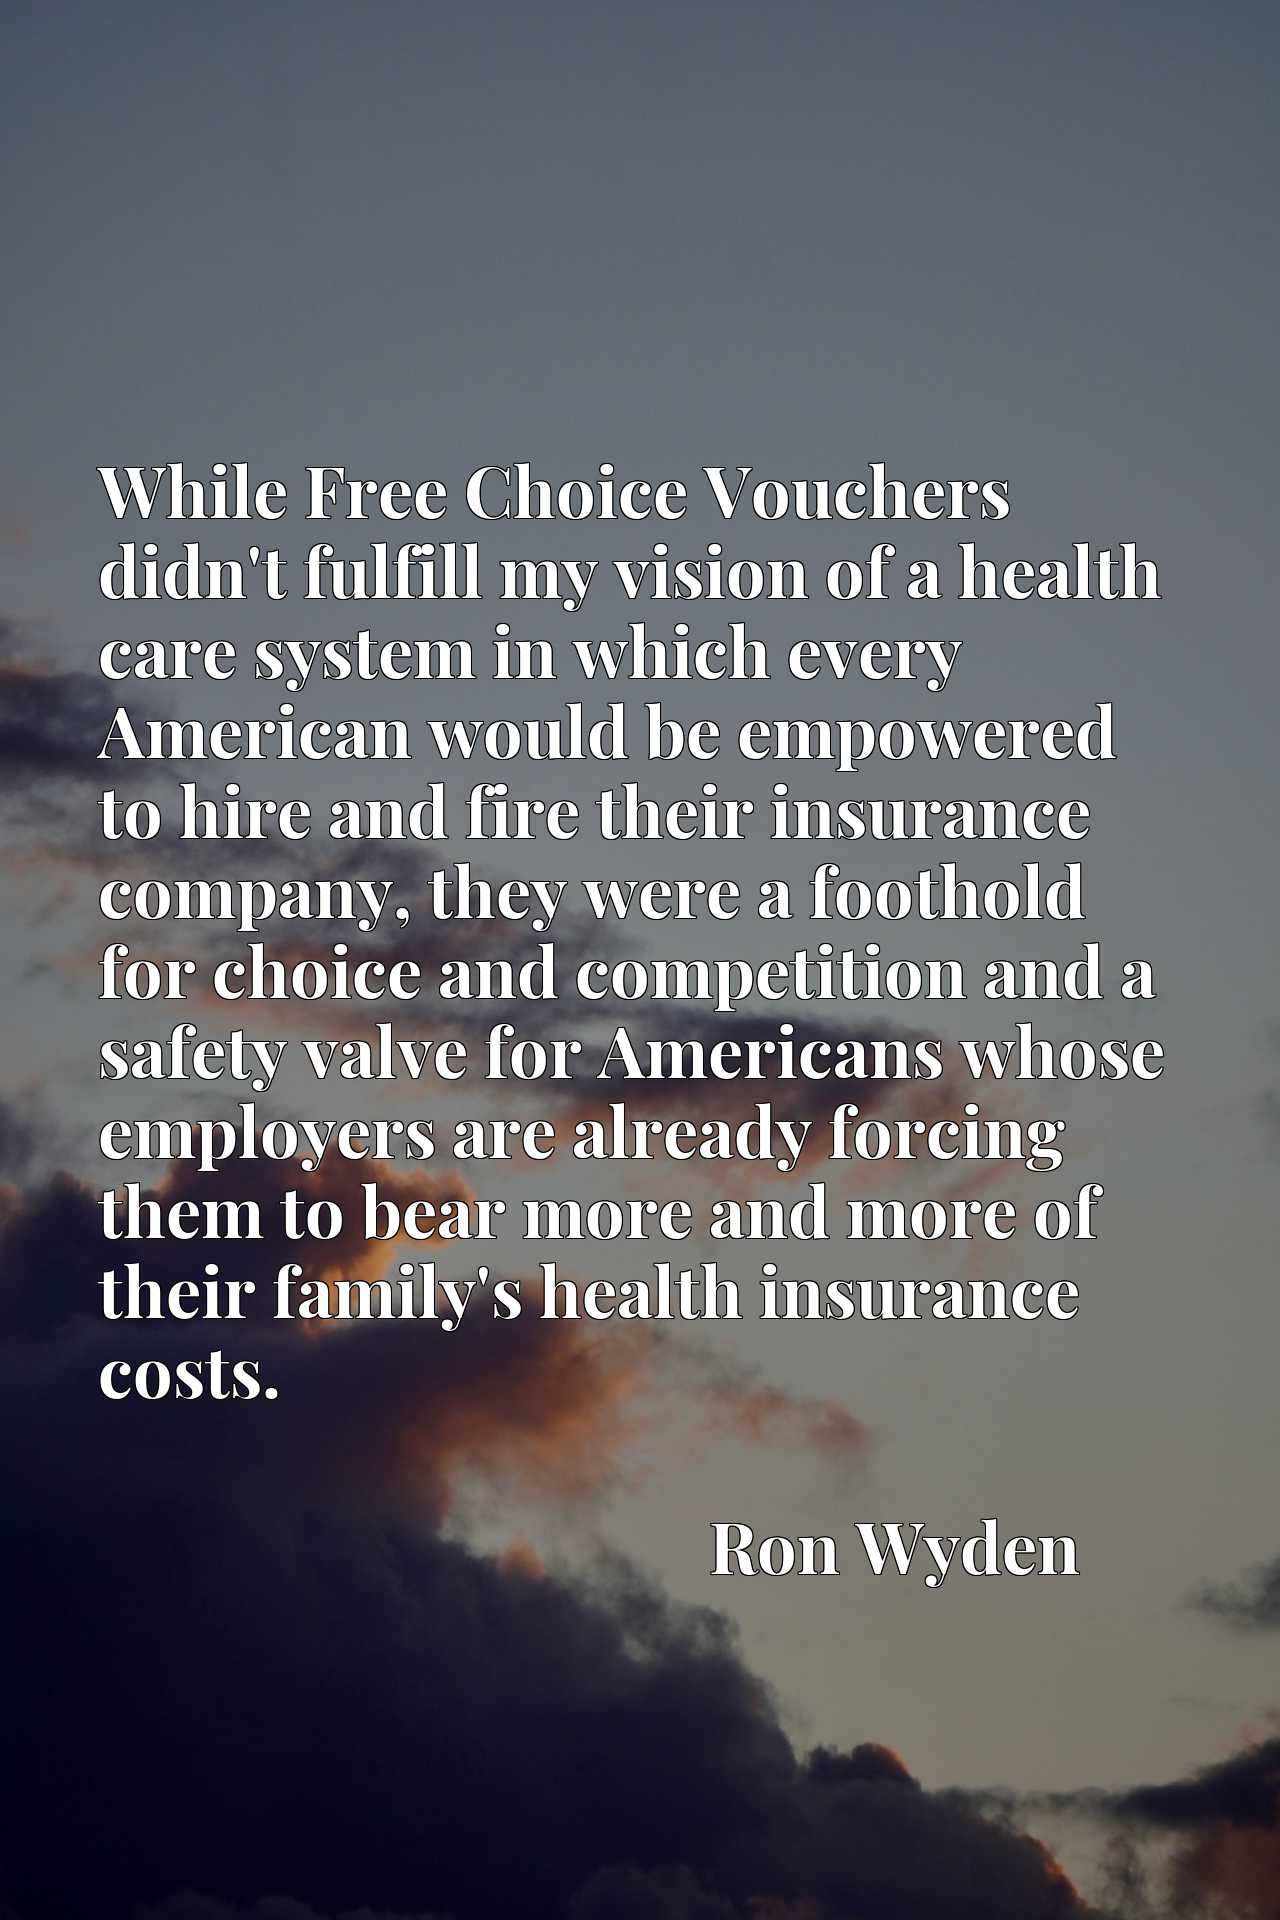 While Free Choice Vouchers didn't fulfill my vision of a health care system in which every American would be empowered to hire and fire their insurance company, they were a foothold for choice and competition and a safety valve for Americans whose employers are already forcing them to bear more and more of their family's health insurance costs.